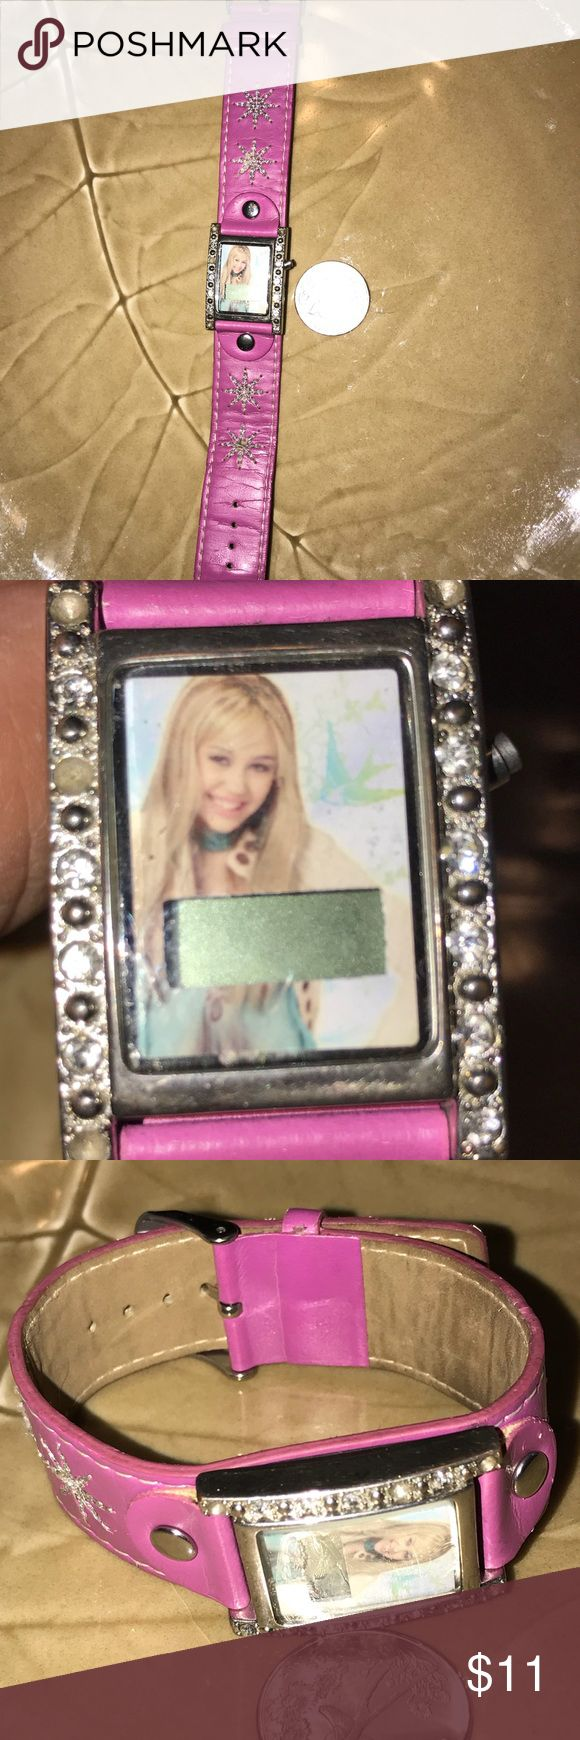 """hannah montana watch(needs new battery) hannah montana adjustable watch; good condition; missing some rhinestones around watch face as pictured; 9"""" lying flat; purple-ly/pink berry color hannah montana Accessories Jewelry"""